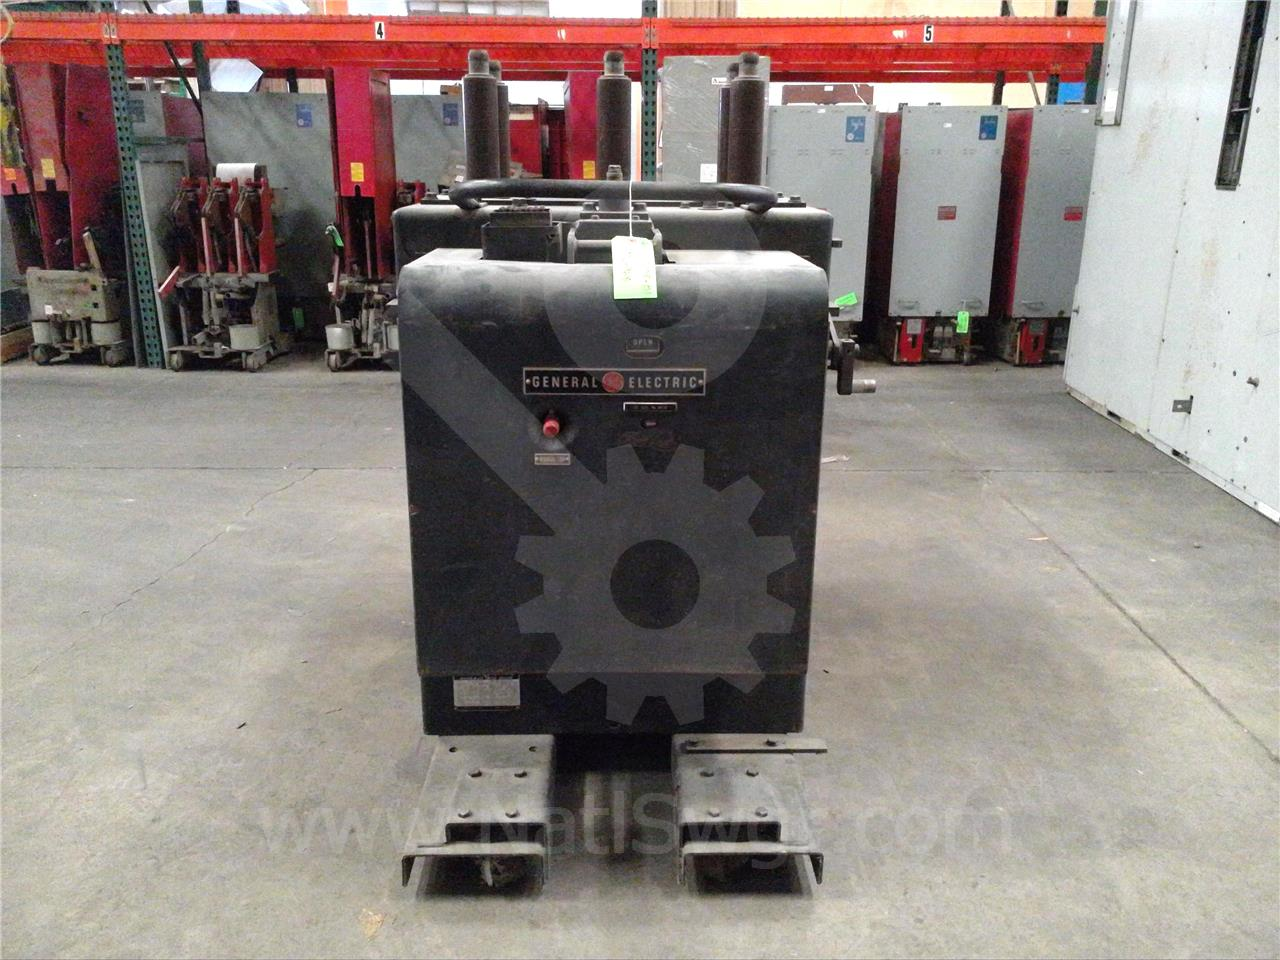 General Electric 1200A GE AM-13.8-500-3